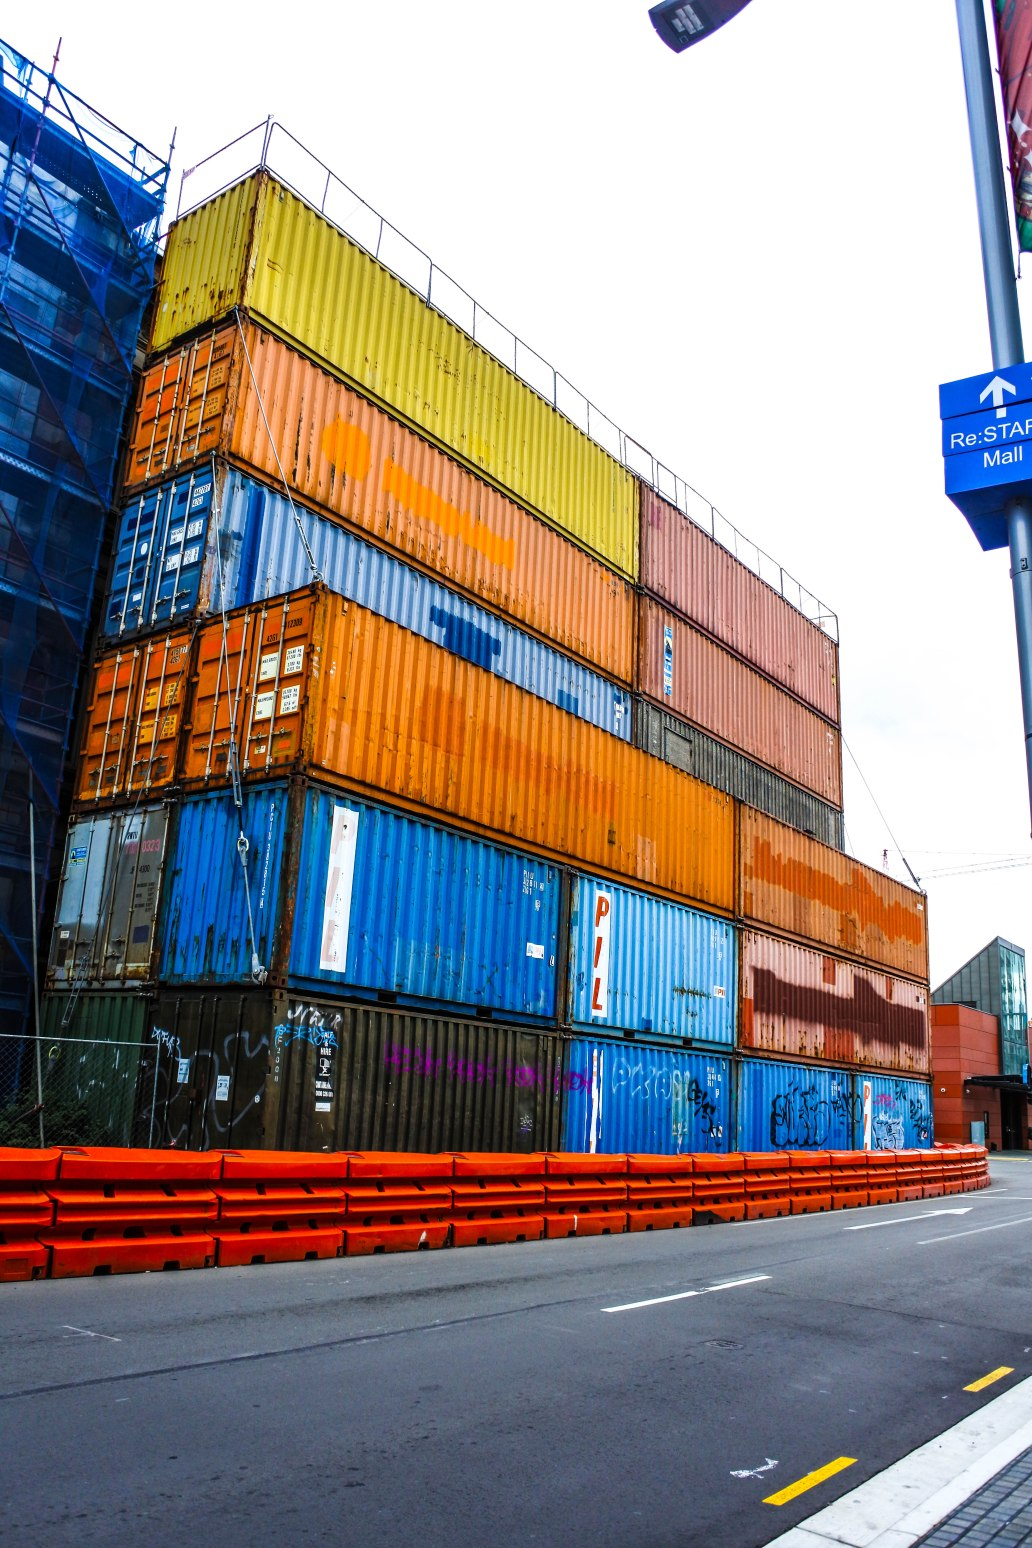 christchurch-shipping-containers